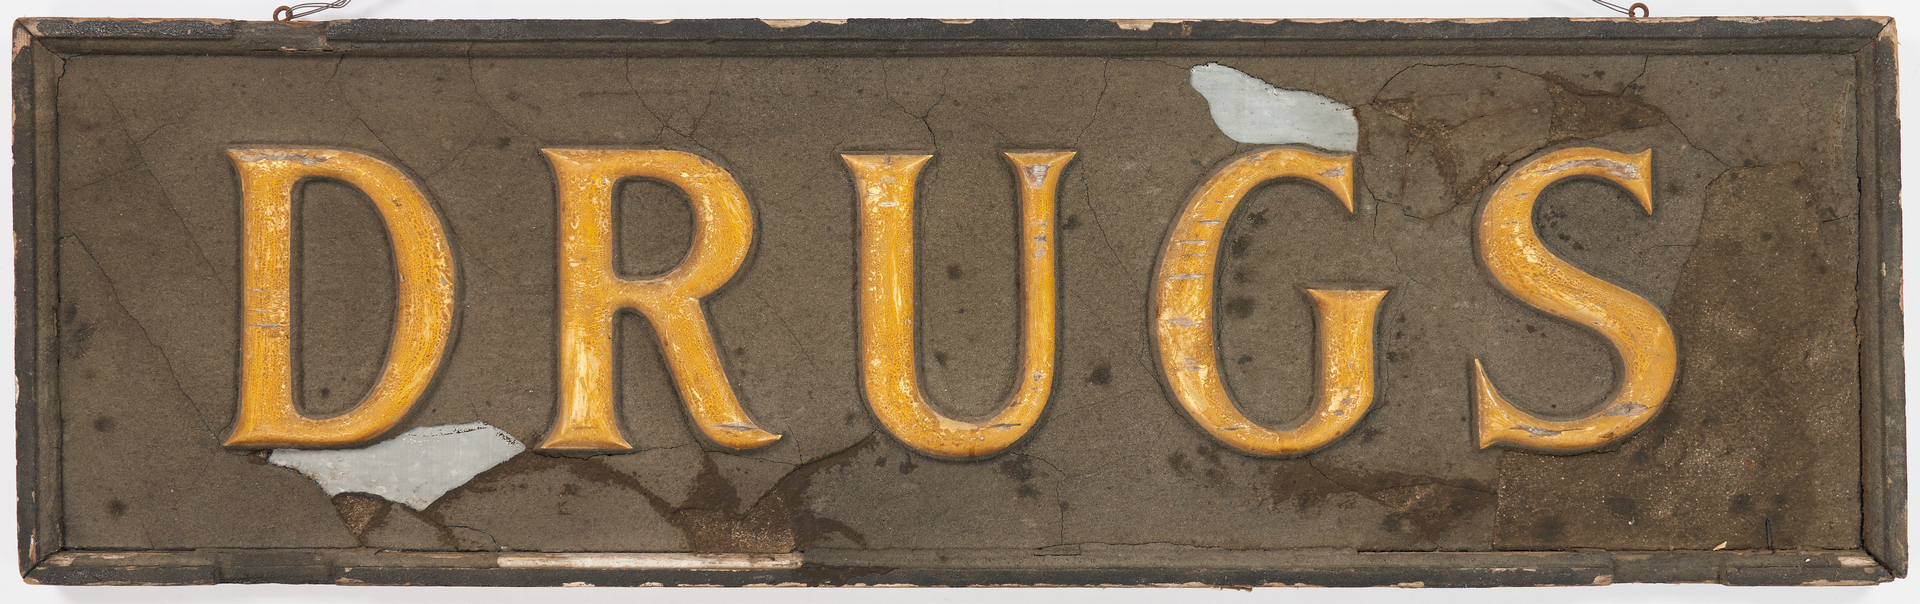 Lot 1174: 2 Painted Advertising Signs, Garage and Pharmacy